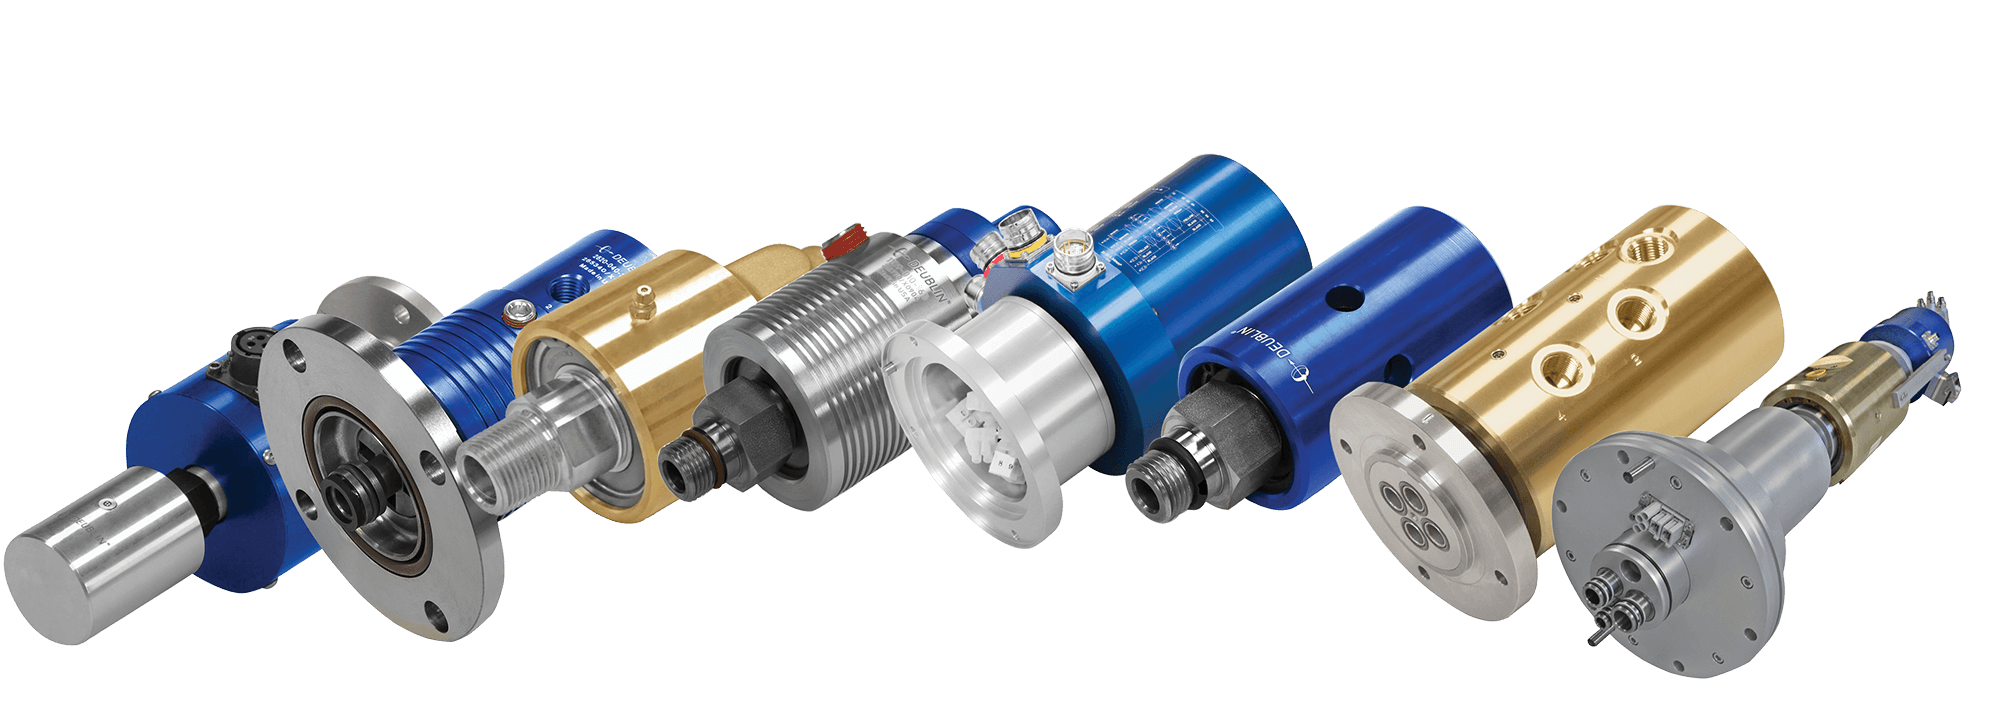 World-Class Rotary Unions and Electrical Slip Rings